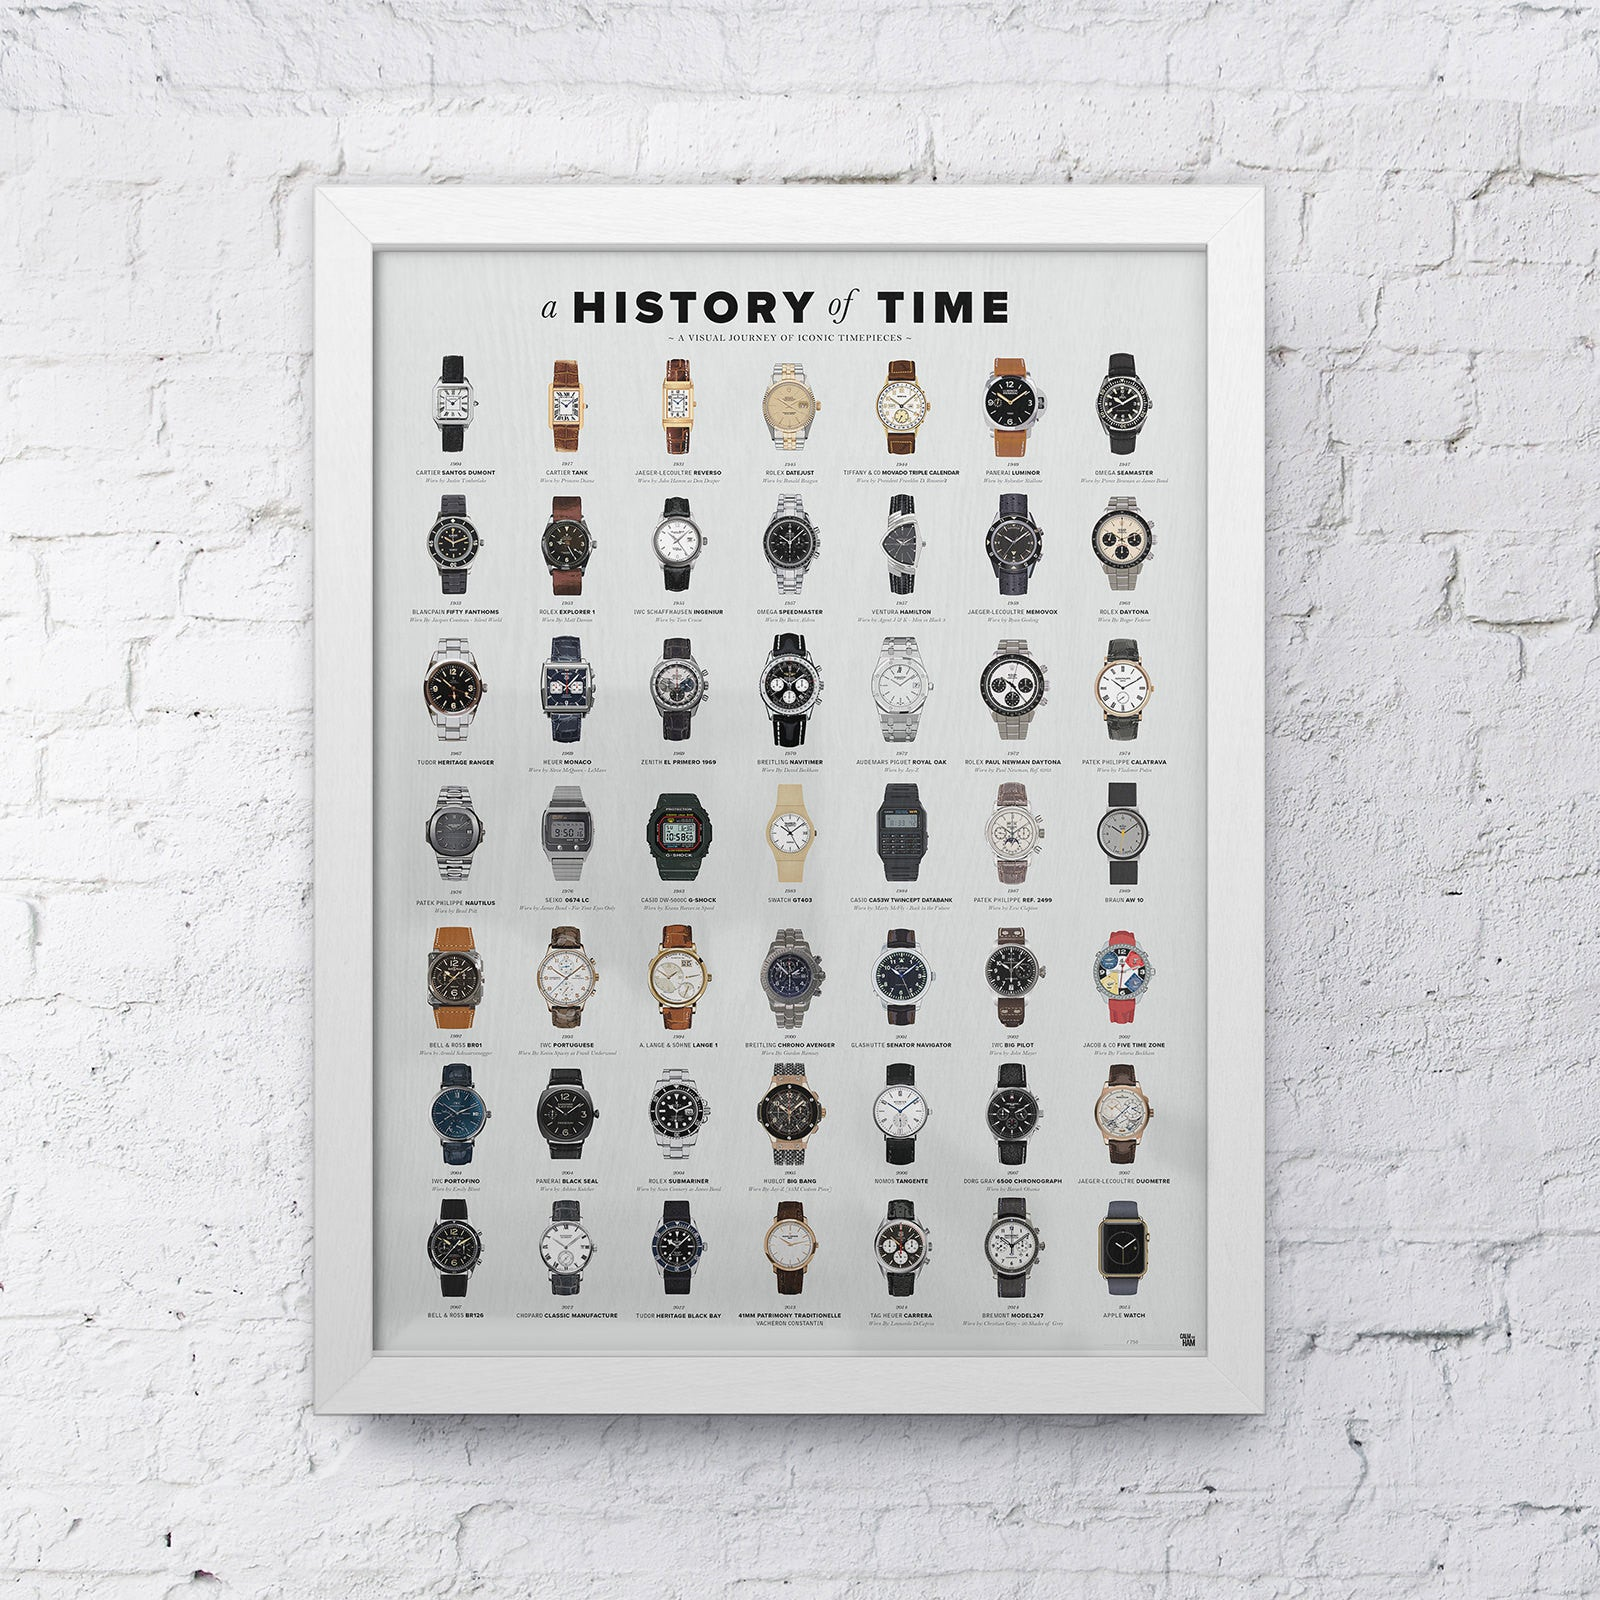 A History of Time